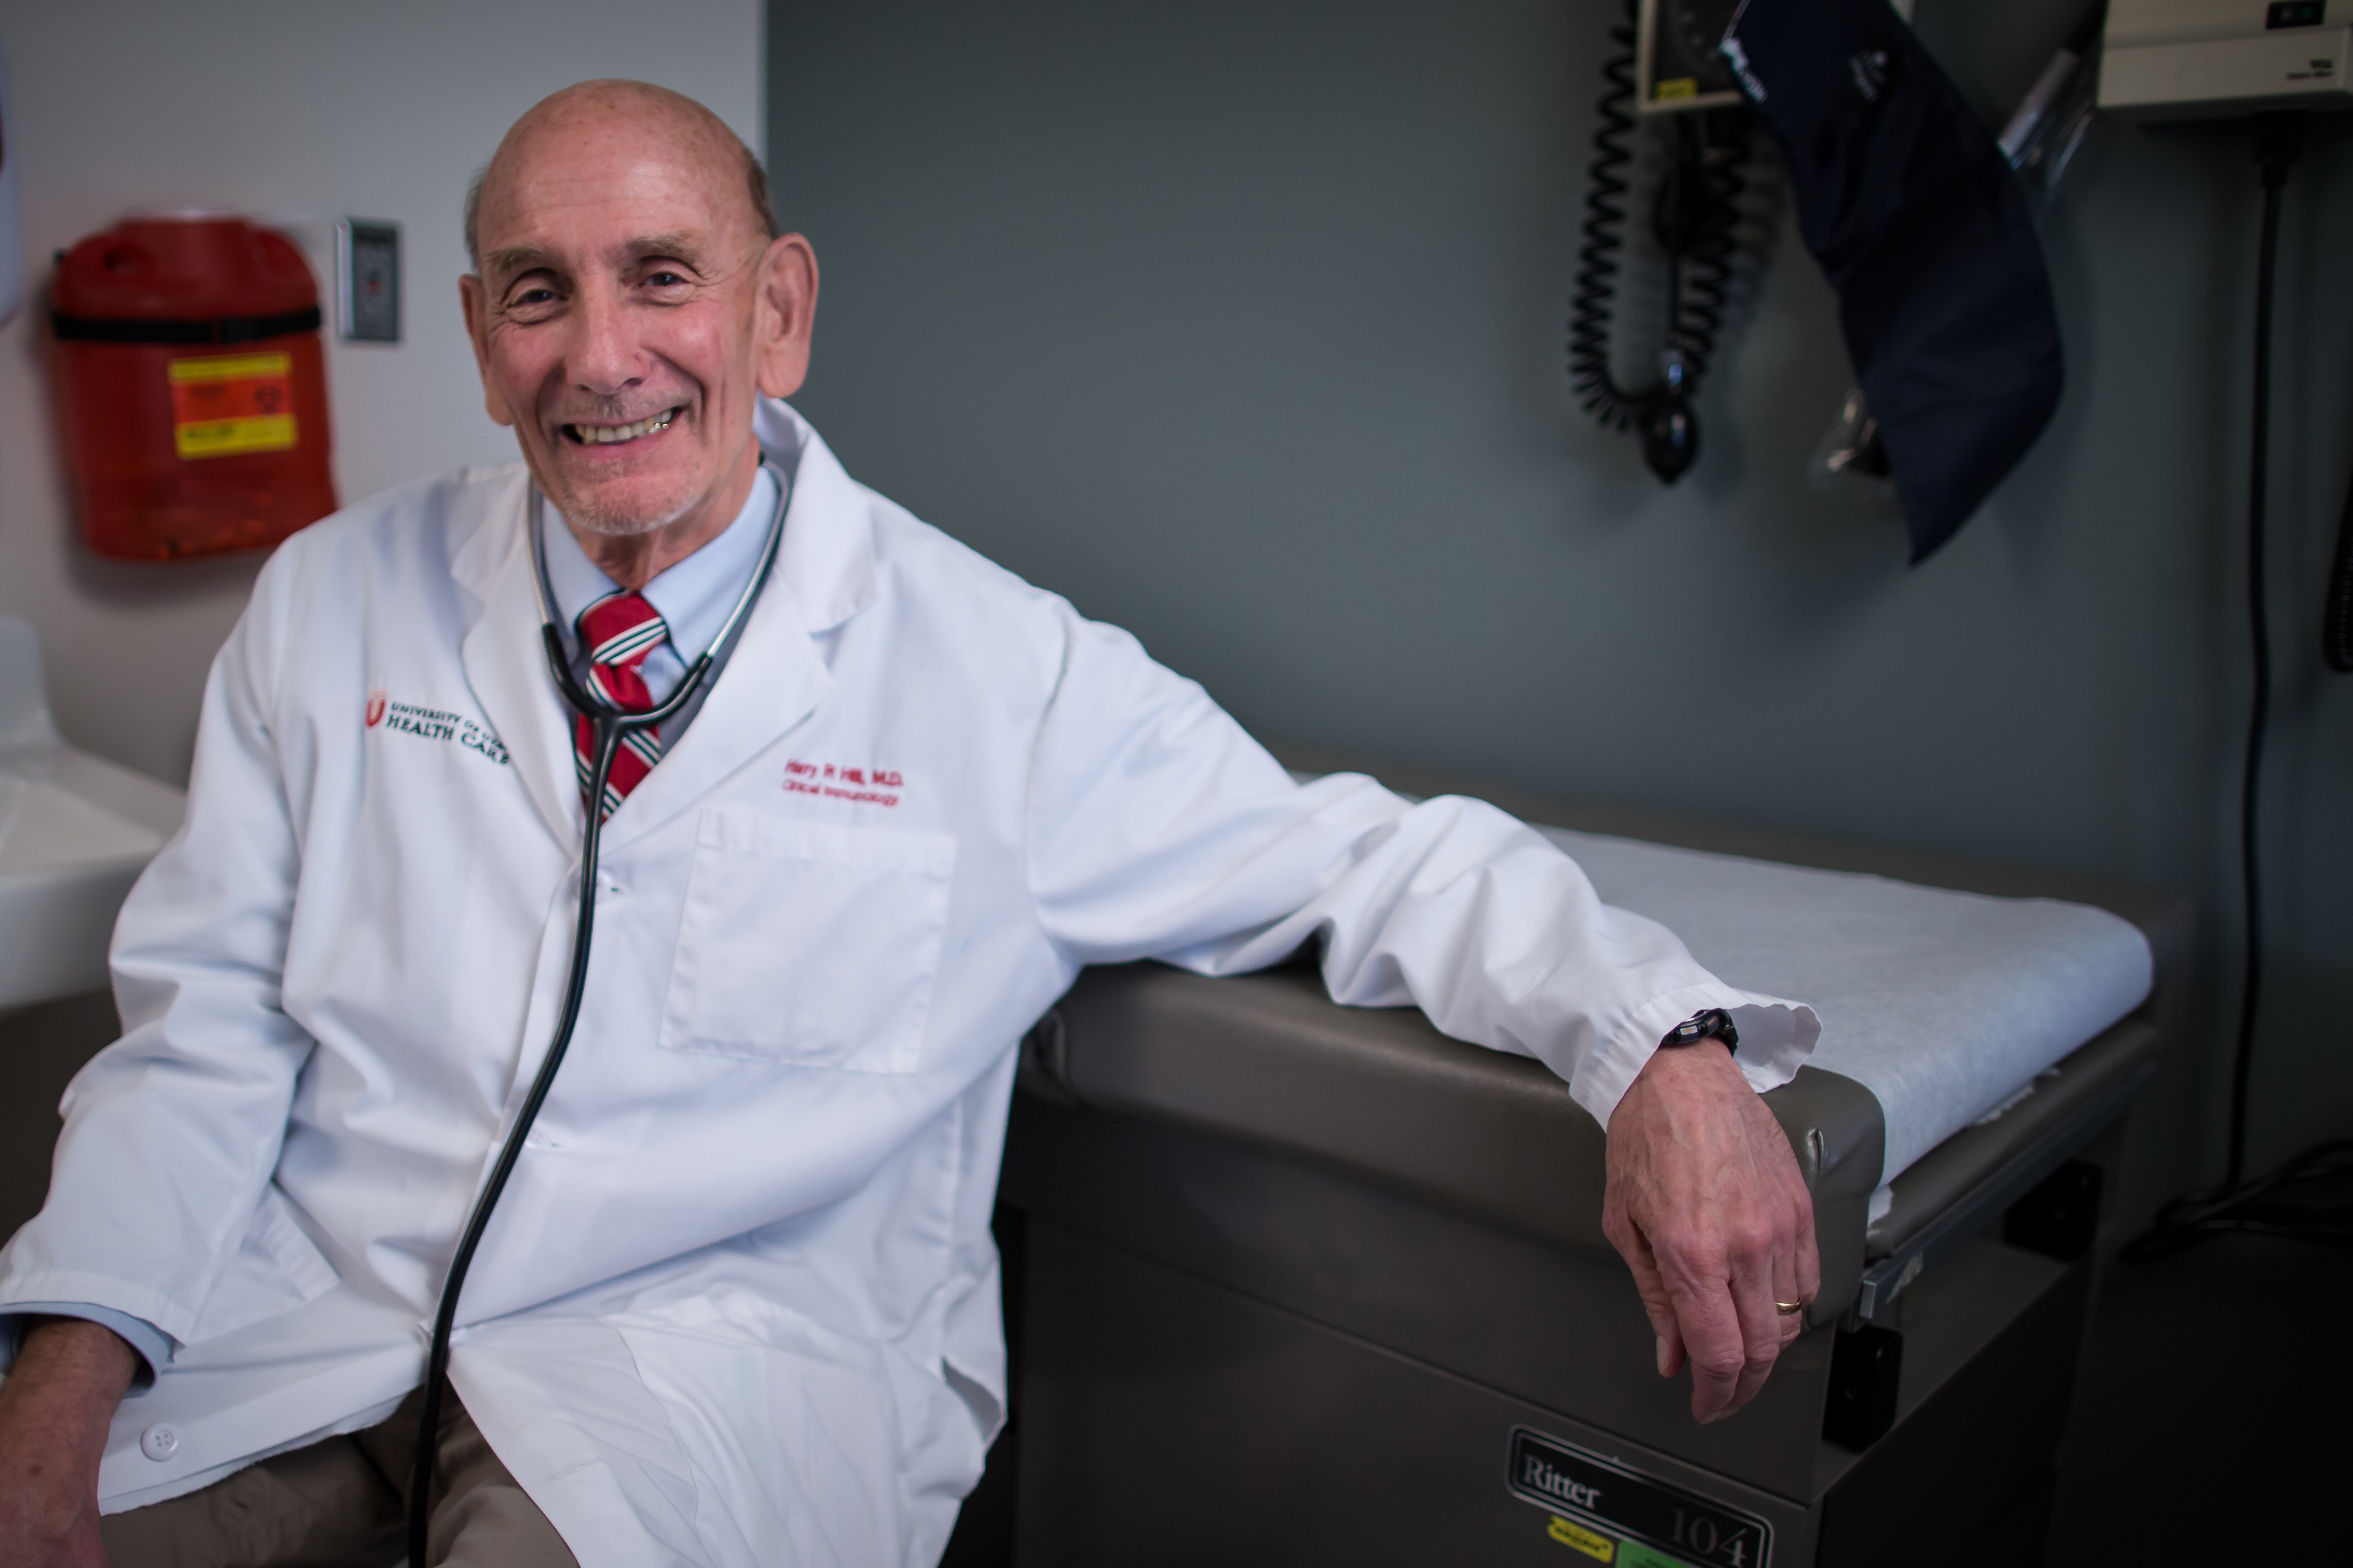 Harry Hill, M.D., immunologist and professor of pathology, pediatrics, and medicine at the University of Utah School of Medicine.